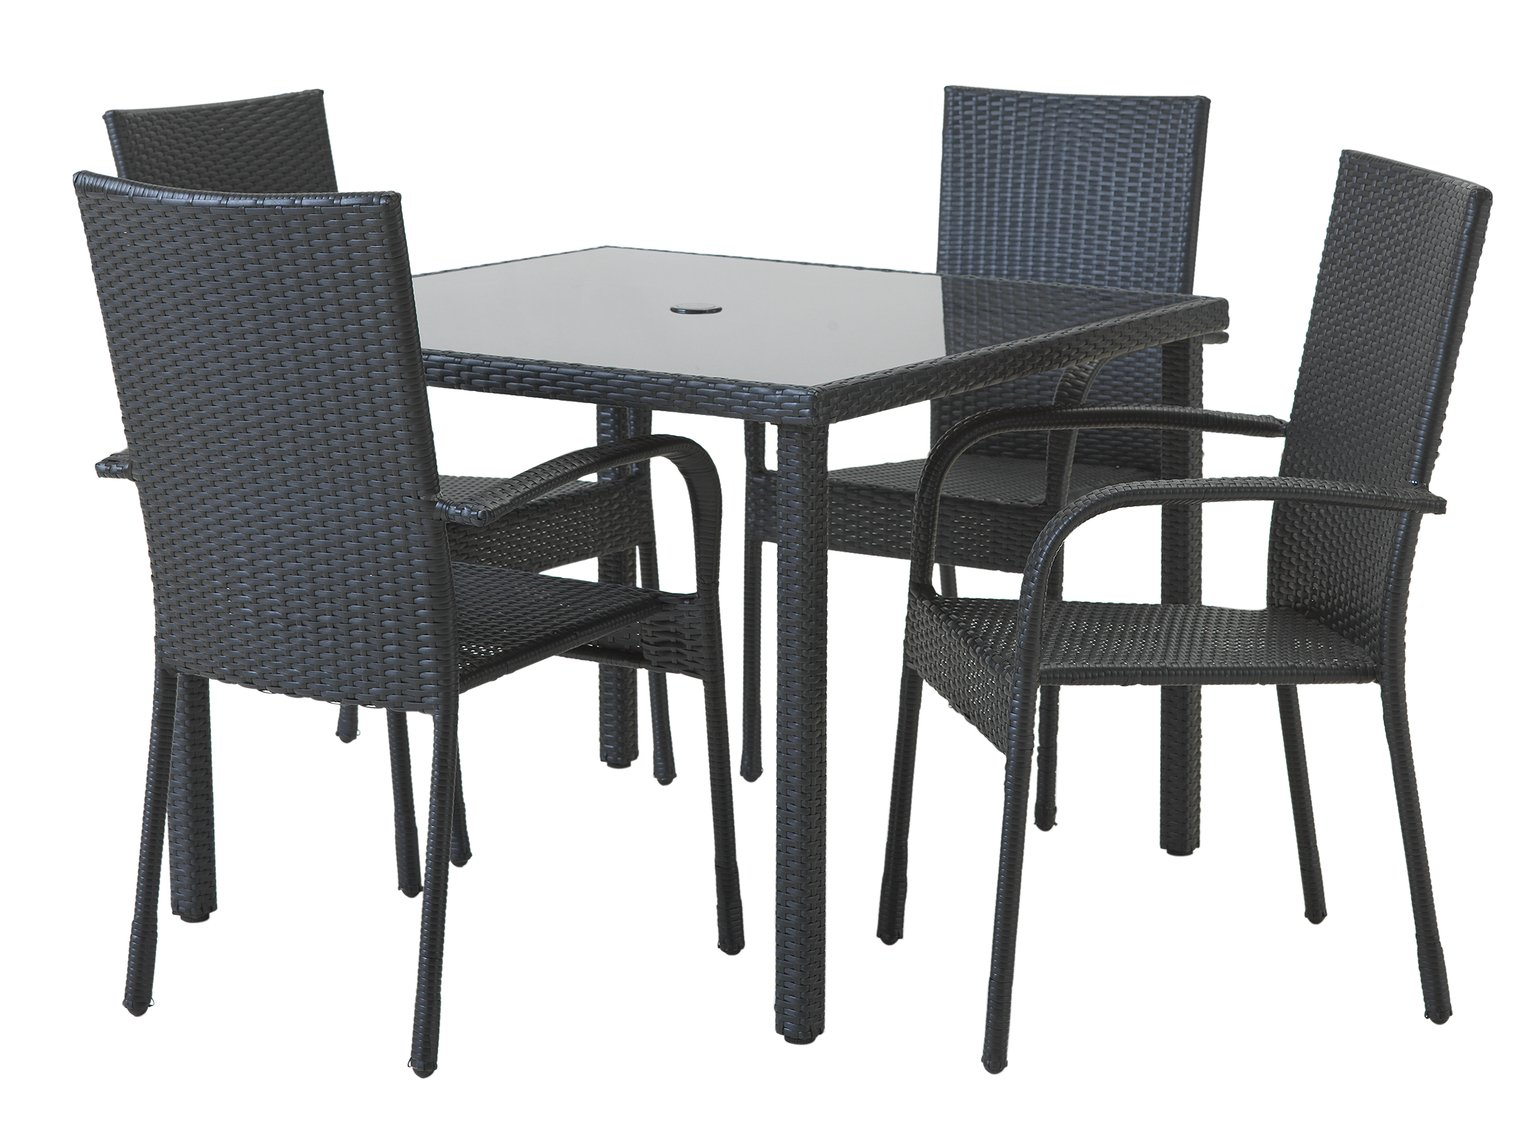 rattan chairs argos quirky chair covers sale on home lima 4 seater effect patio set with